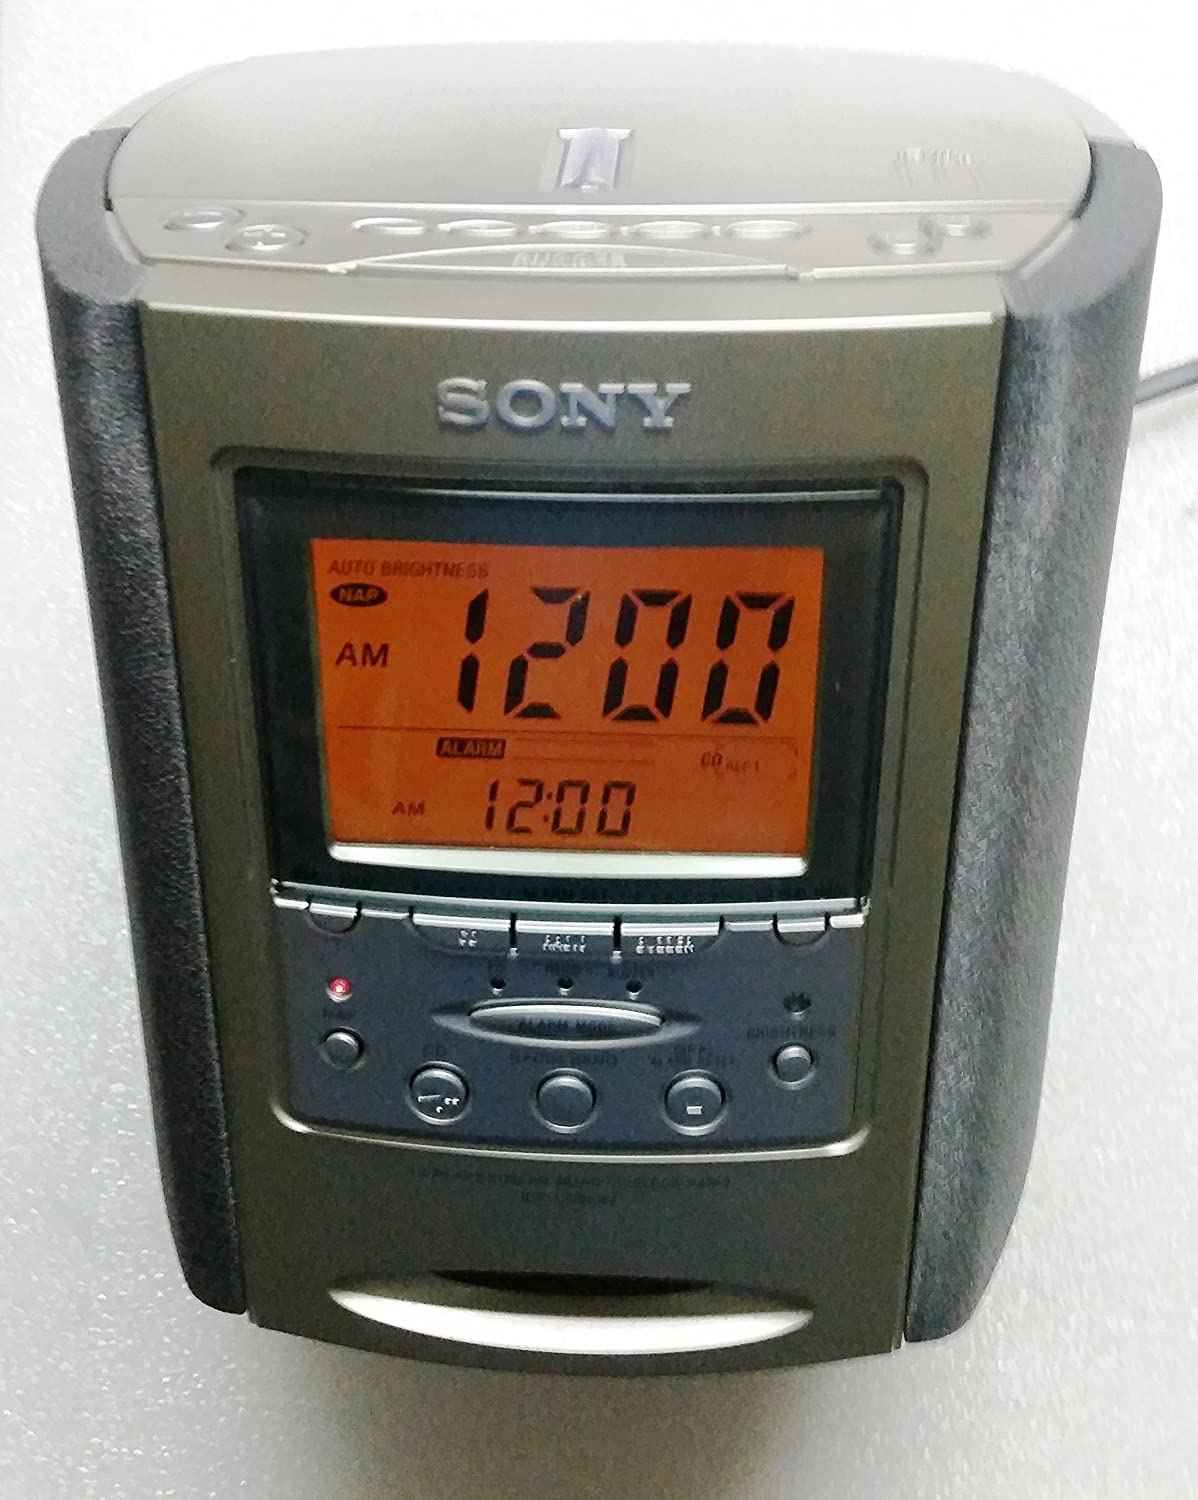 B0000995KT Sony ICF-CD863V AM/FM/TV/Weather Clock Radio/CD Player (Discontinued by Manufacturer) 91ckfpfP5lL.SL1500_